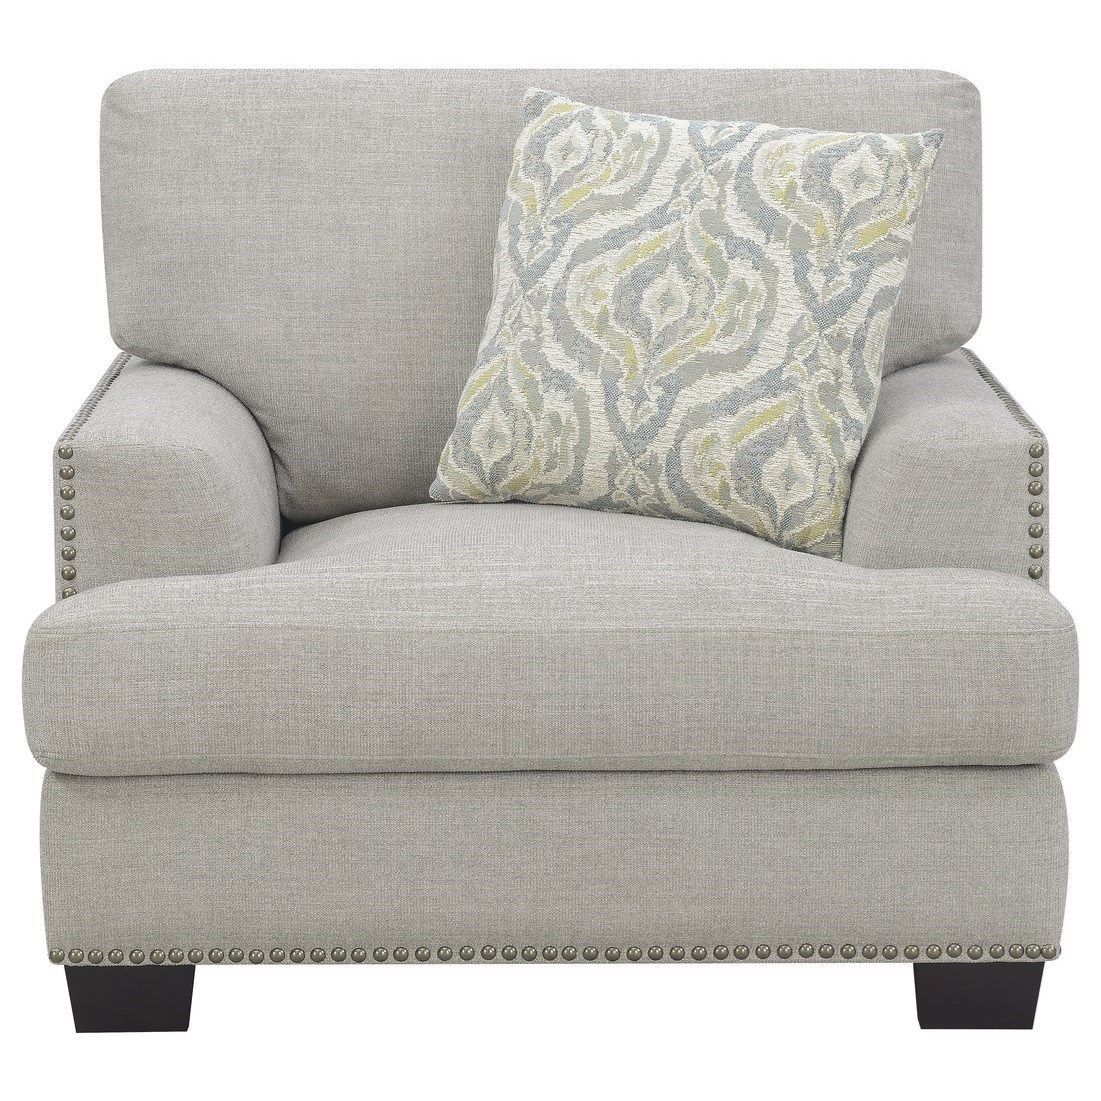 Kinsley Chair by Emerald at Northeast Factory Direct